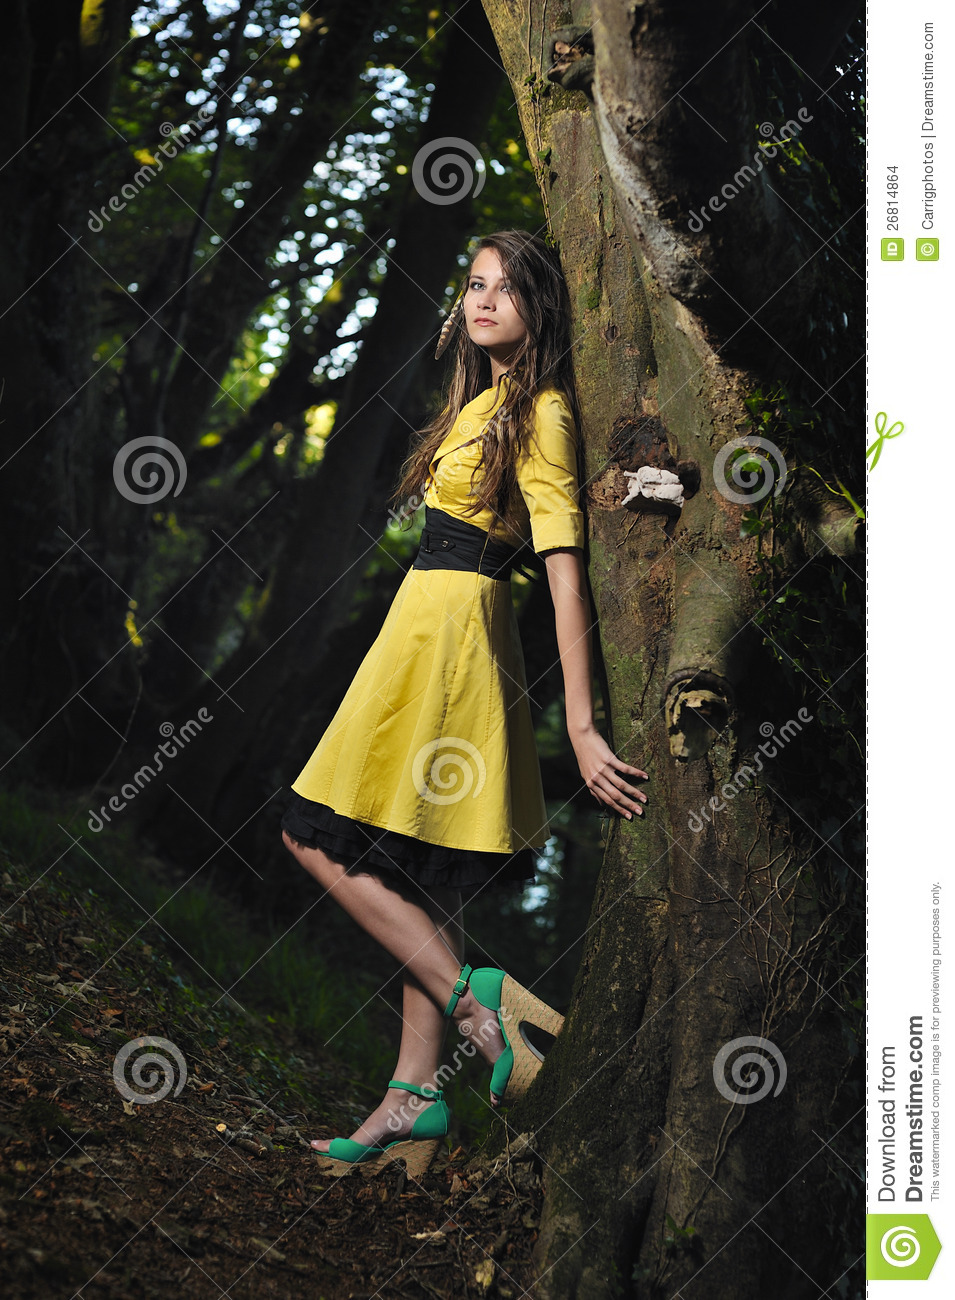 Teenage girl leaning against wall Stock Photo: 71414752